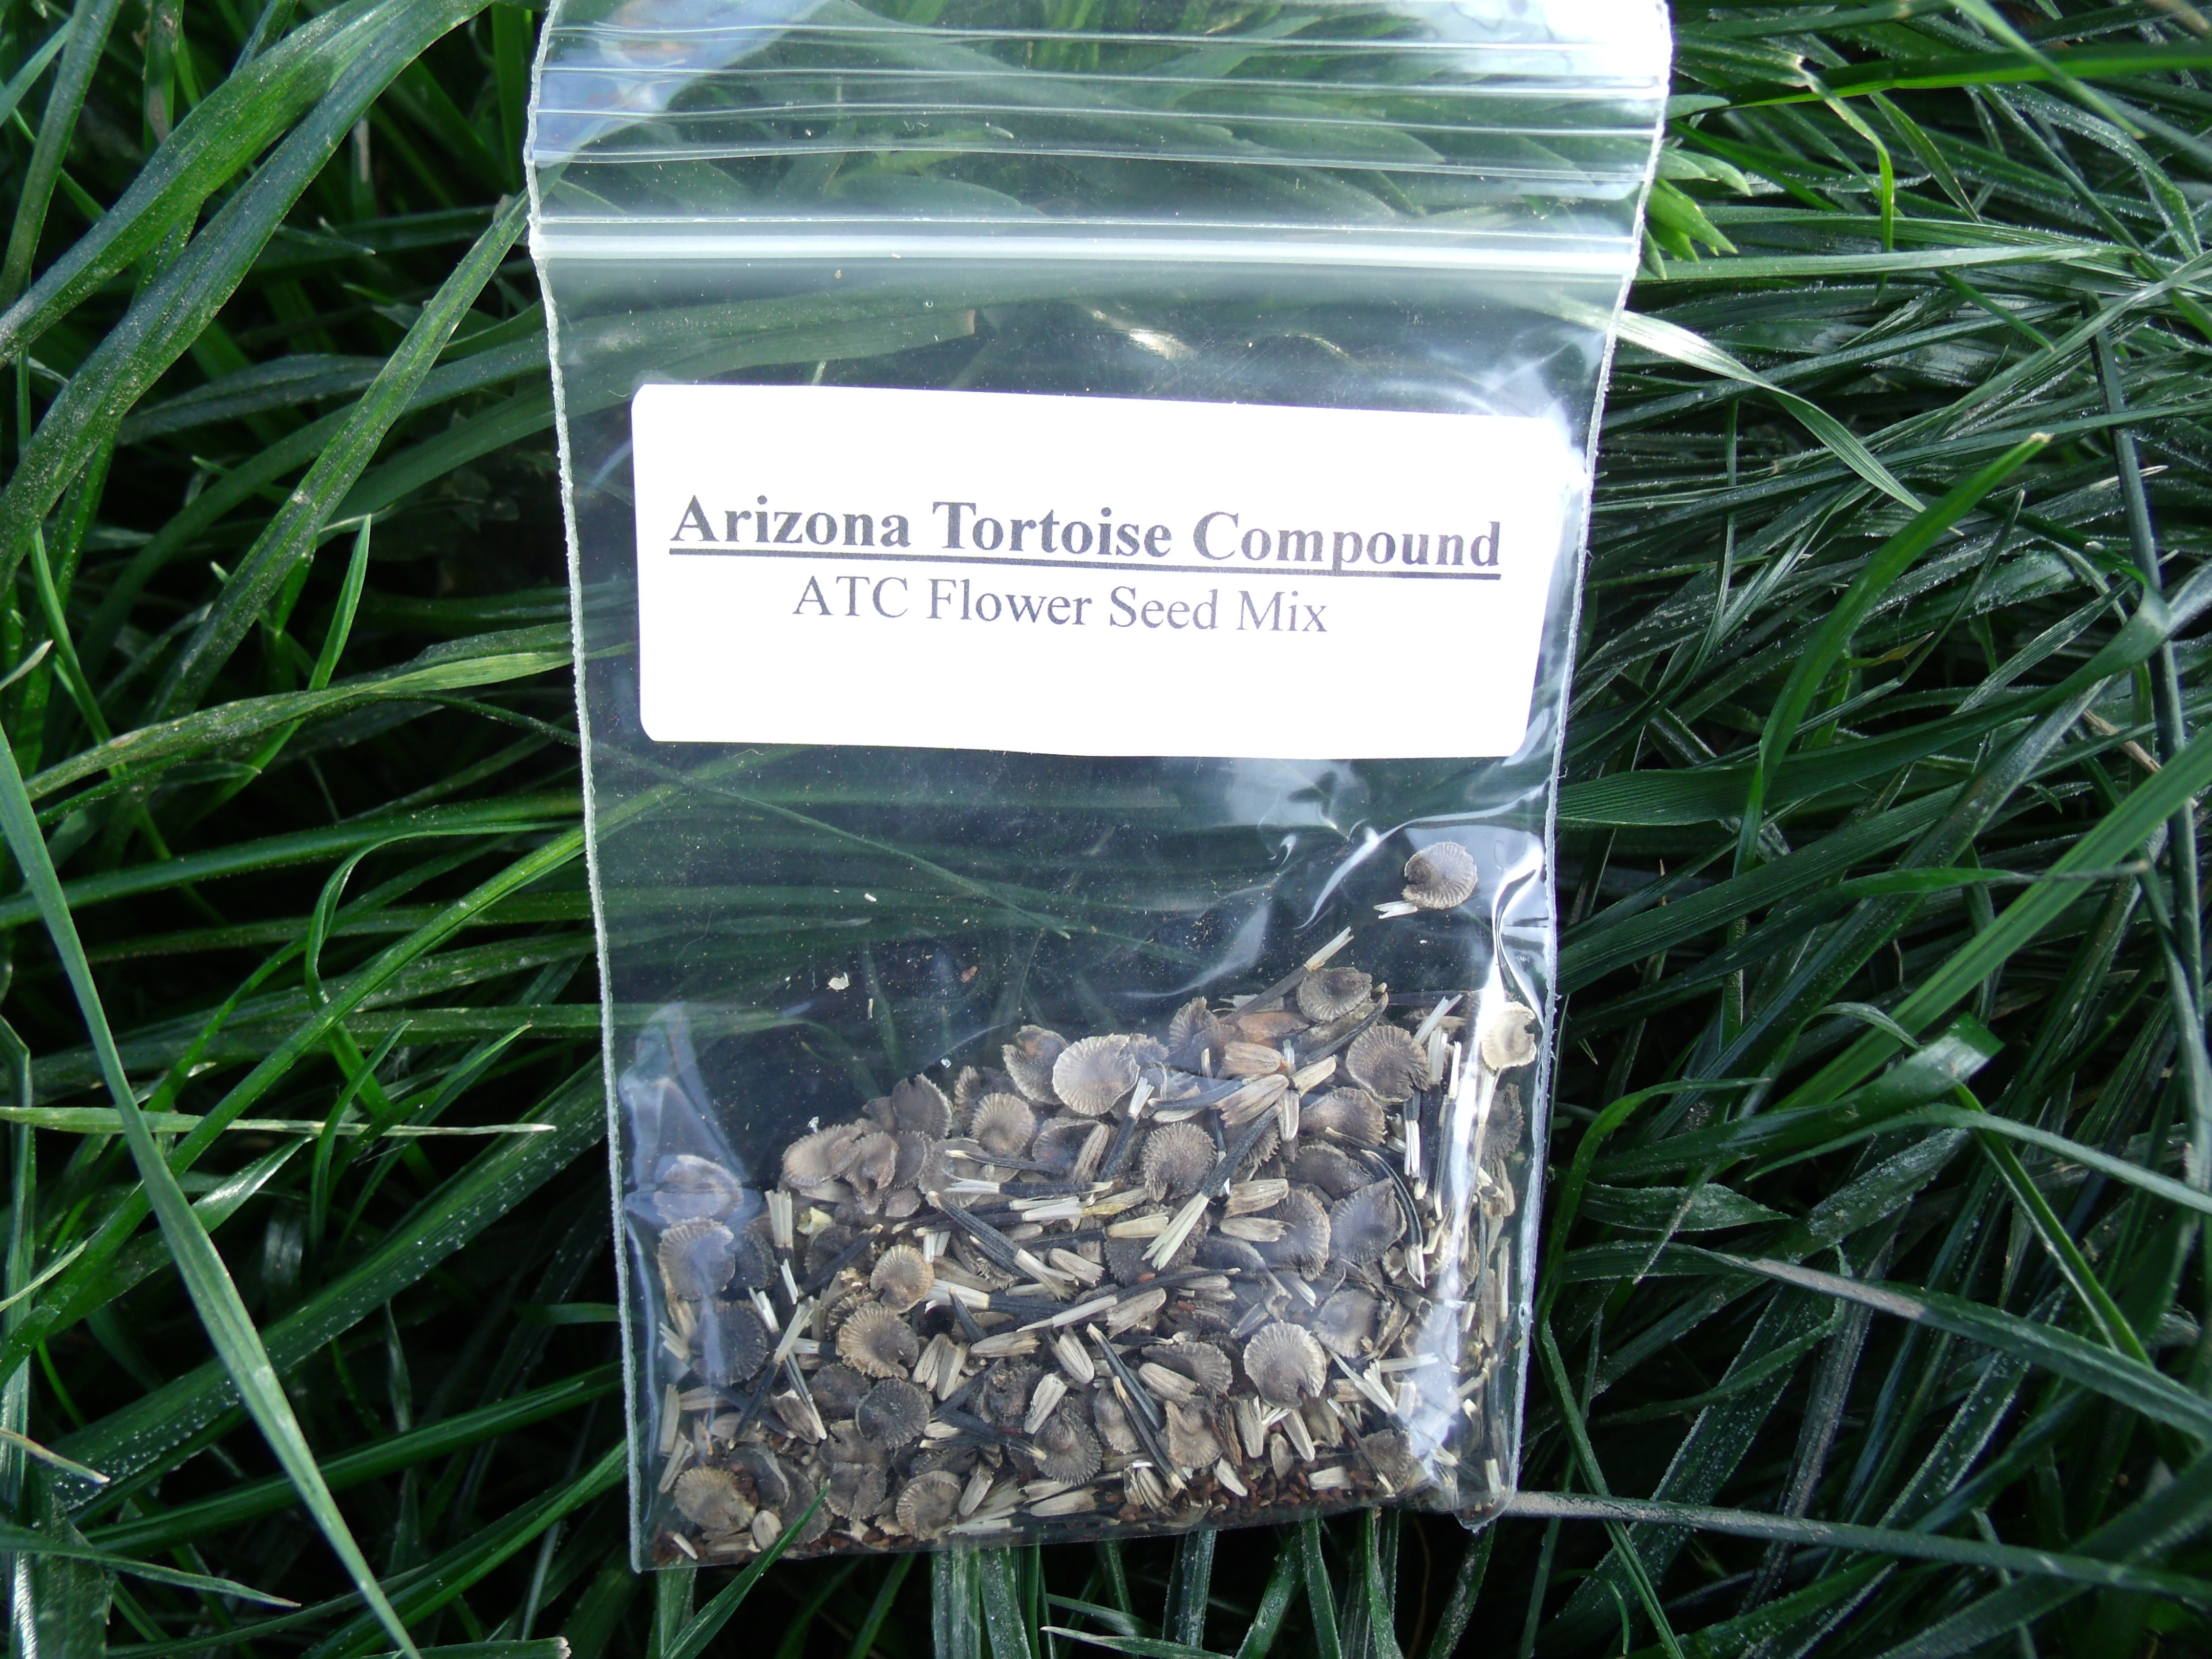 A.T.C. Flower Seed mix